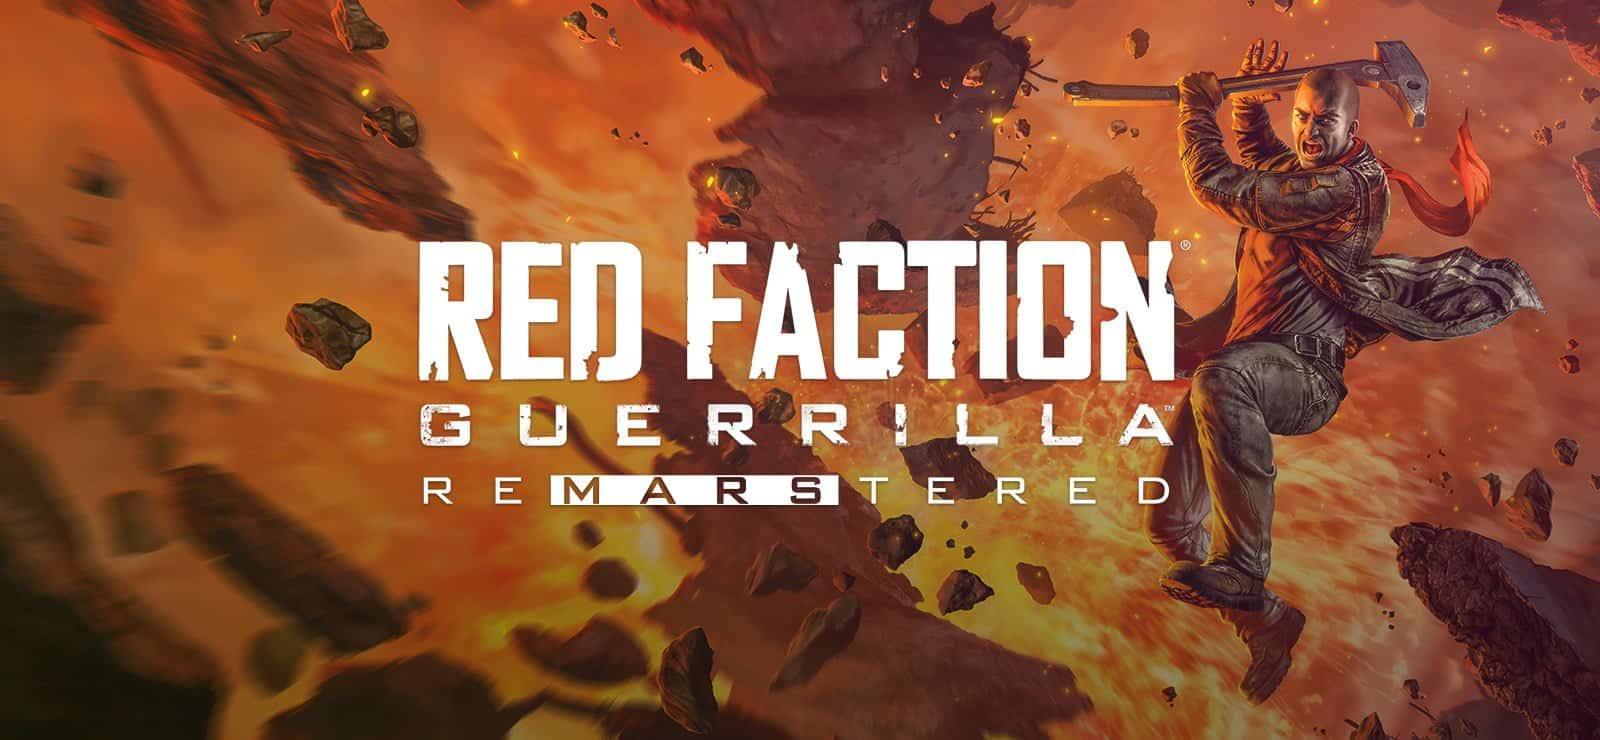 Red Faction Xbox 360 Version Full Game Free Download